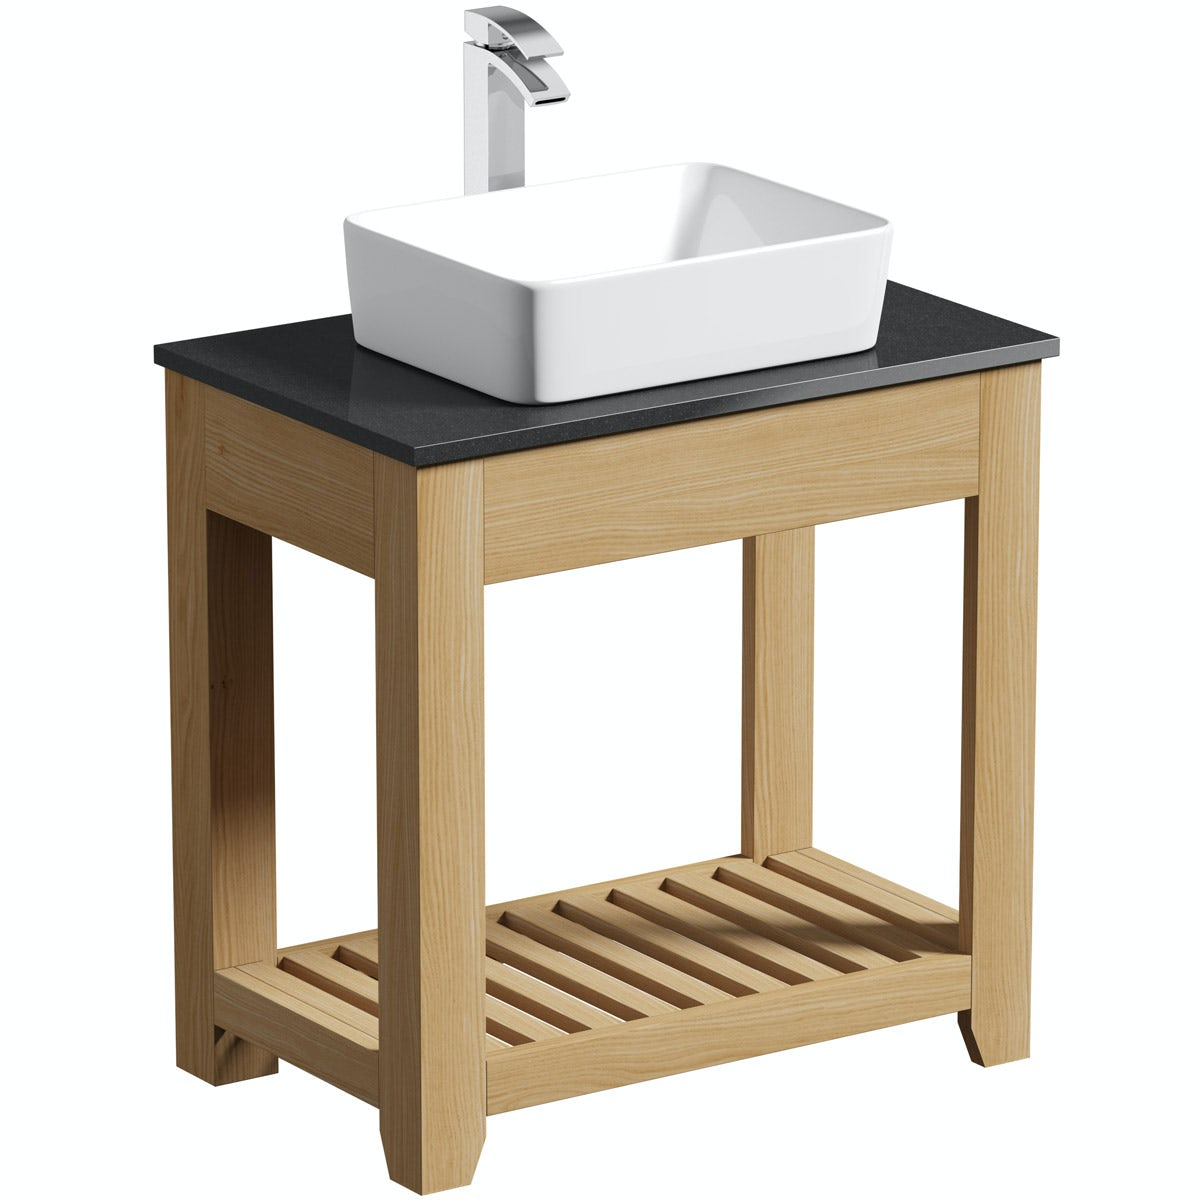 The Bath Co. Hoxton oak washstand with black marble top and Ellis basin 800mm